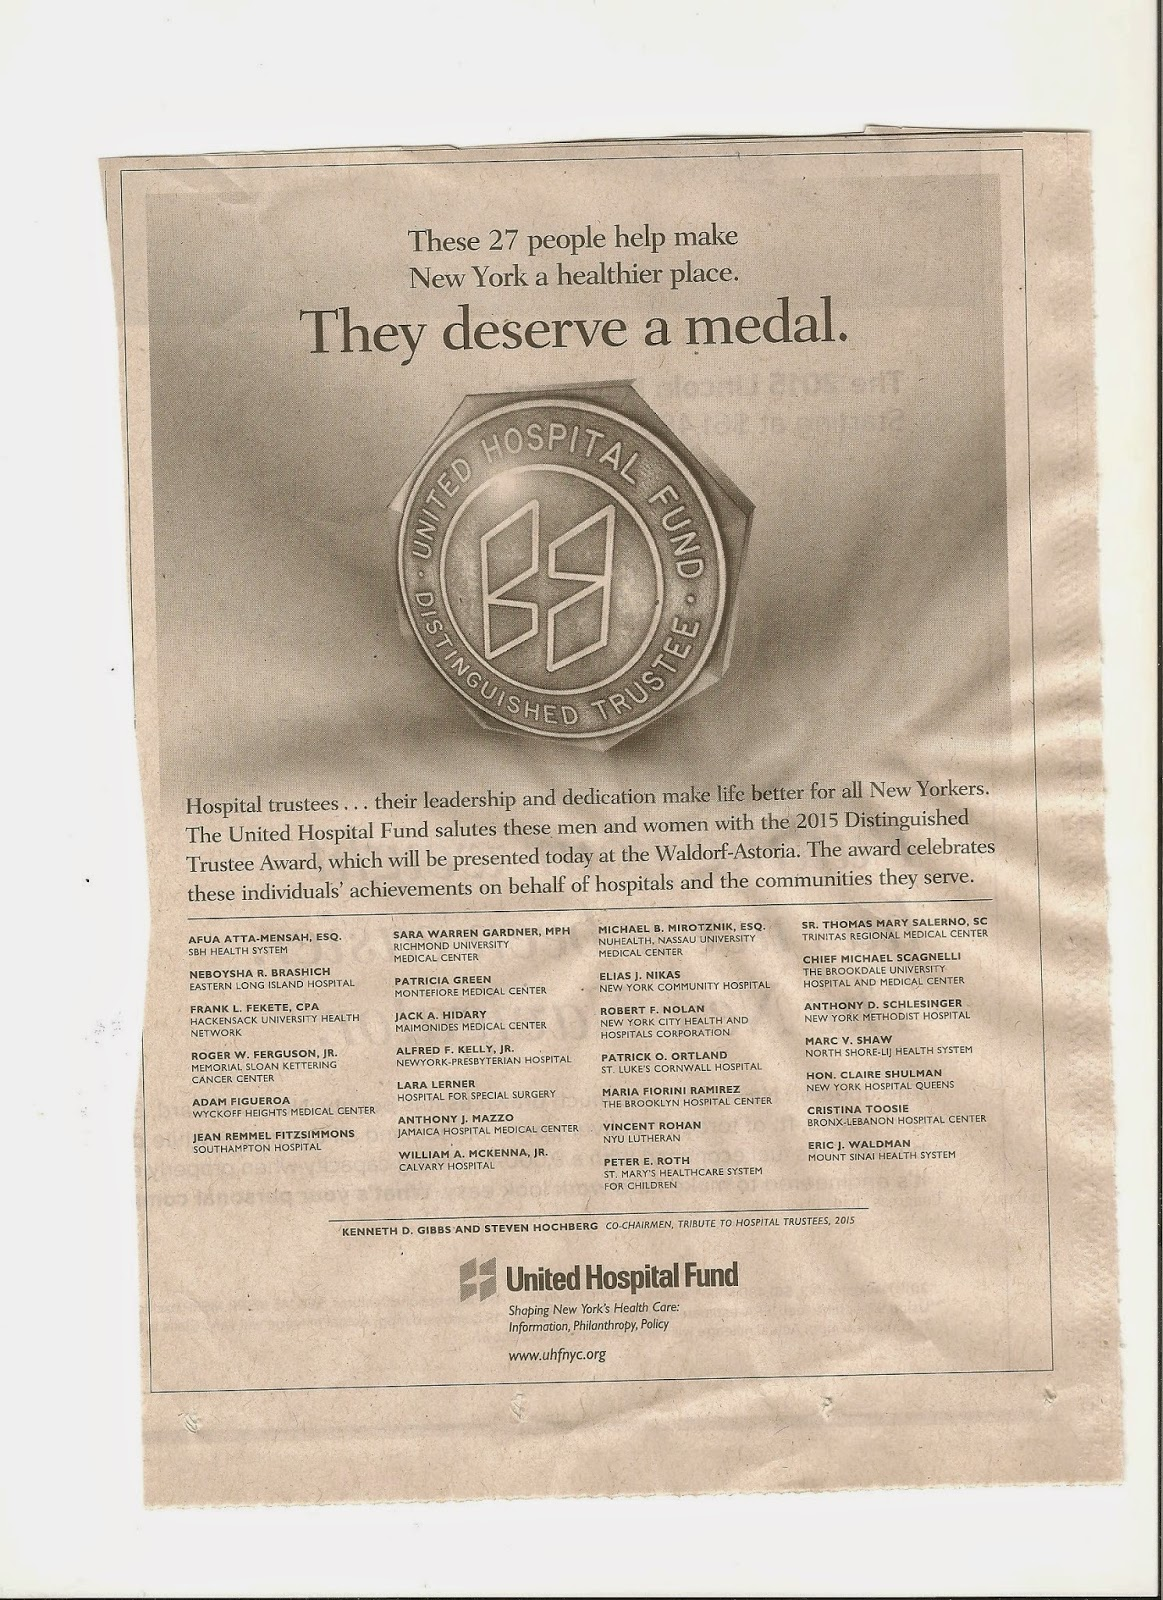 Not Running a Hospital: Do they deserve a medal?